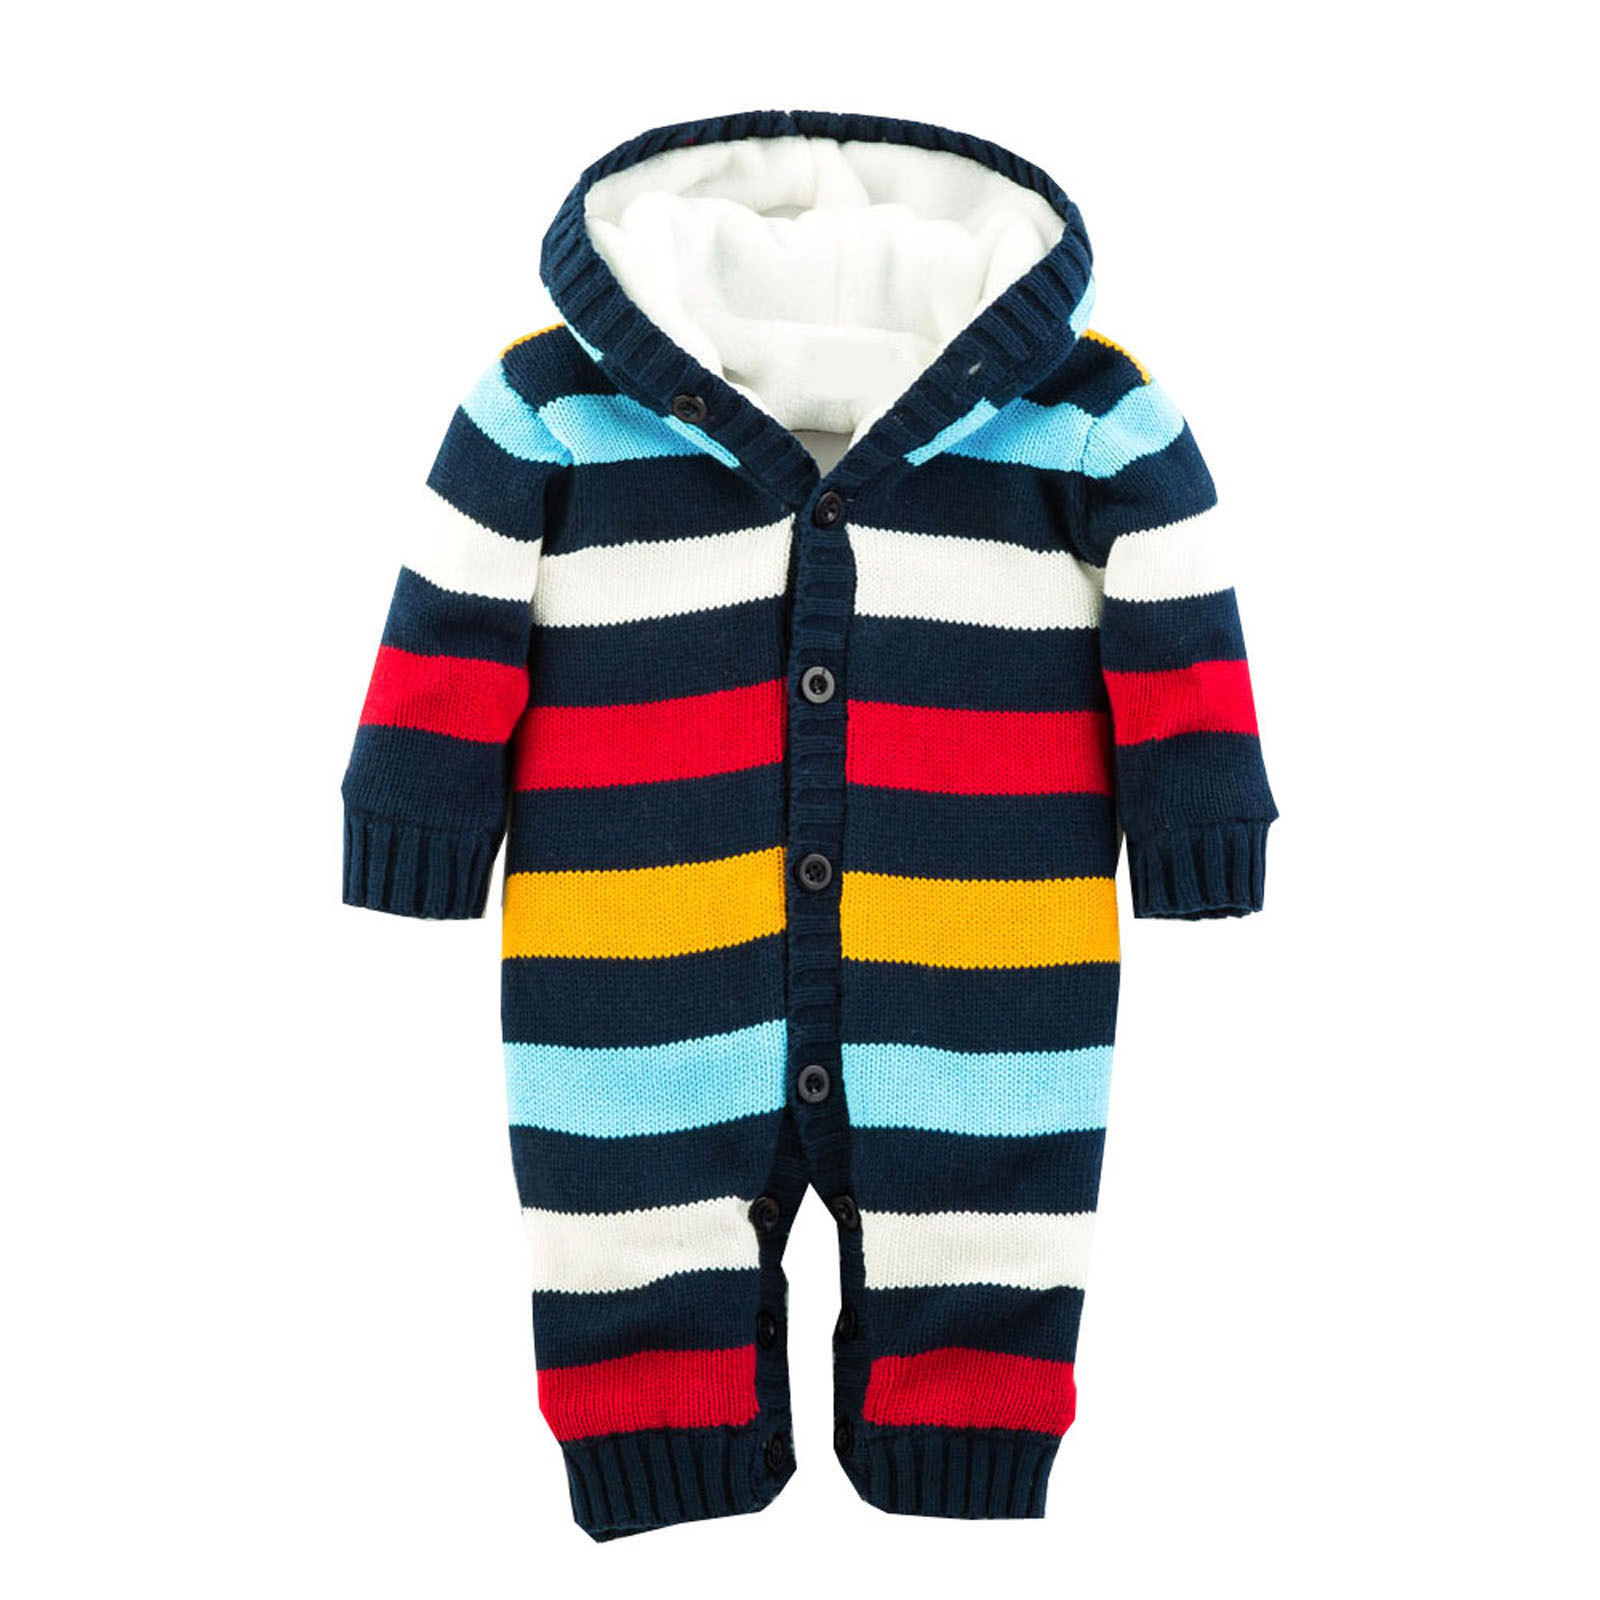 Winter Newborn Baby Romper Boys Girls Rompers Jumpsuit Warm Thick Knitted Sweater Hooded Outwear Climbing Clothes